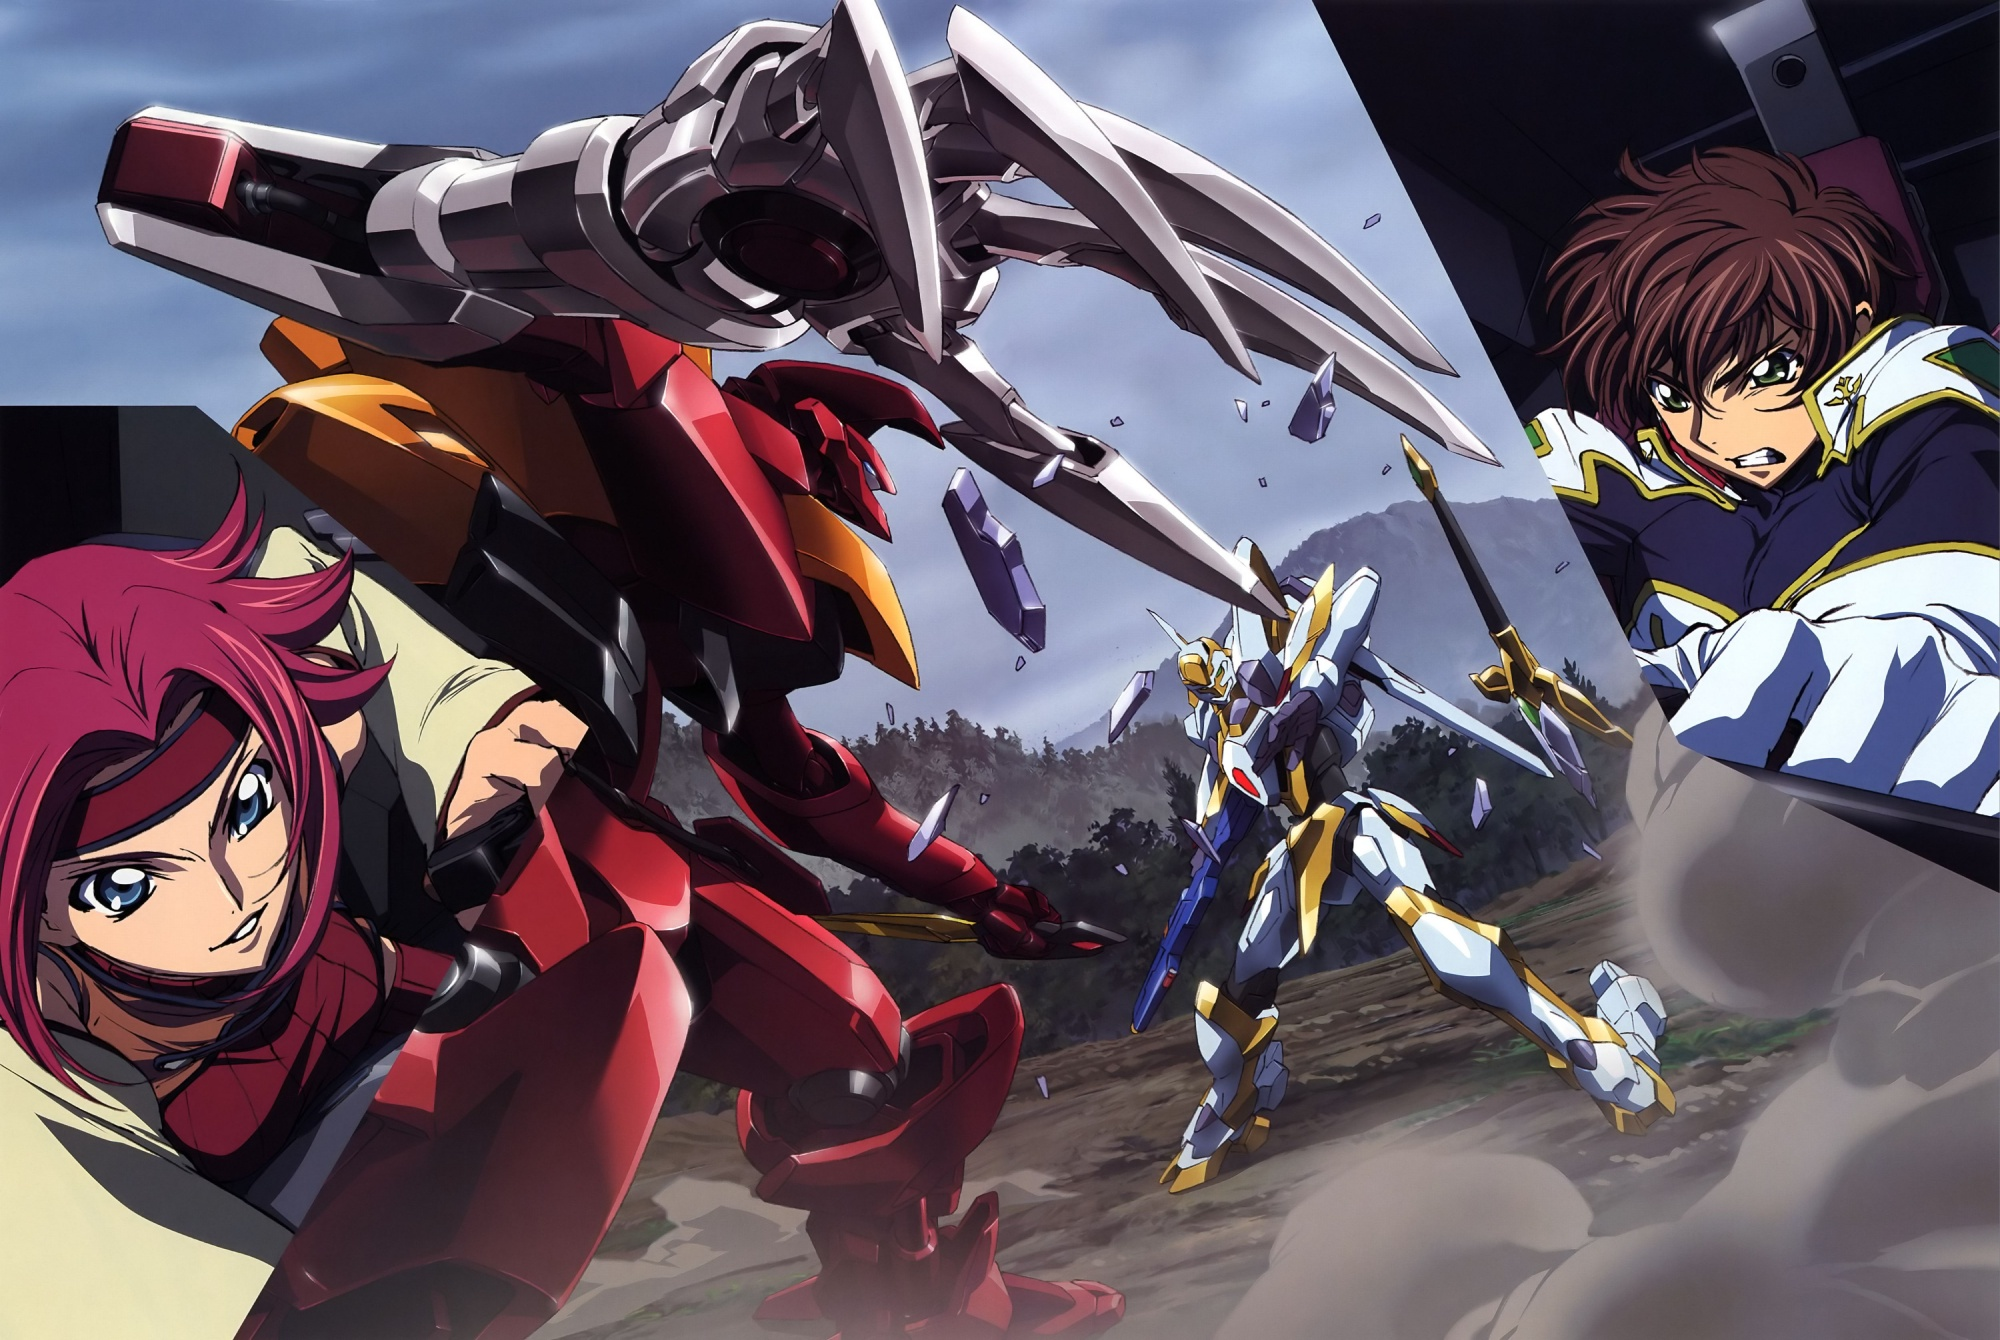 code geass hd wallpaper 52502